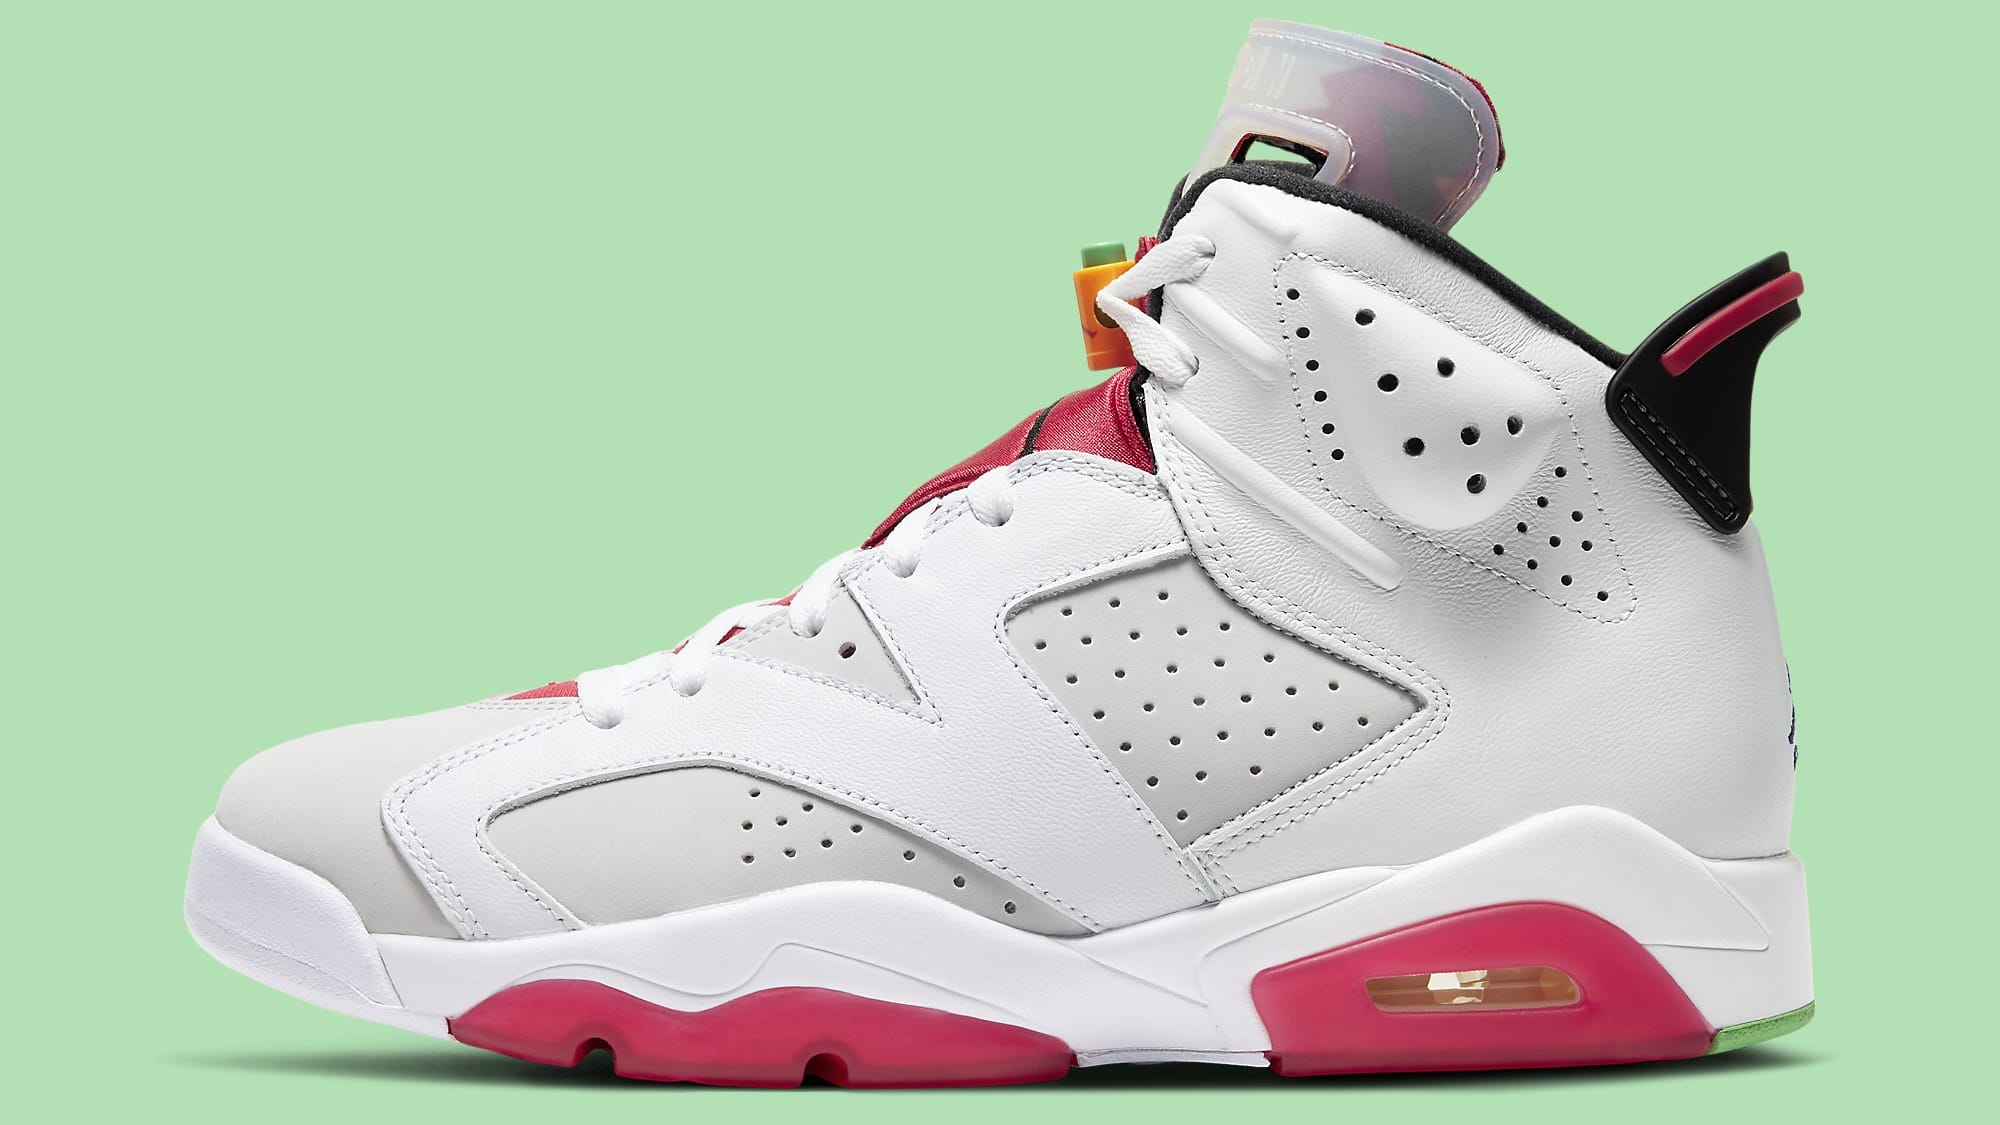 Air Jordan 6 Hare Release Date CT8529-062 Profile